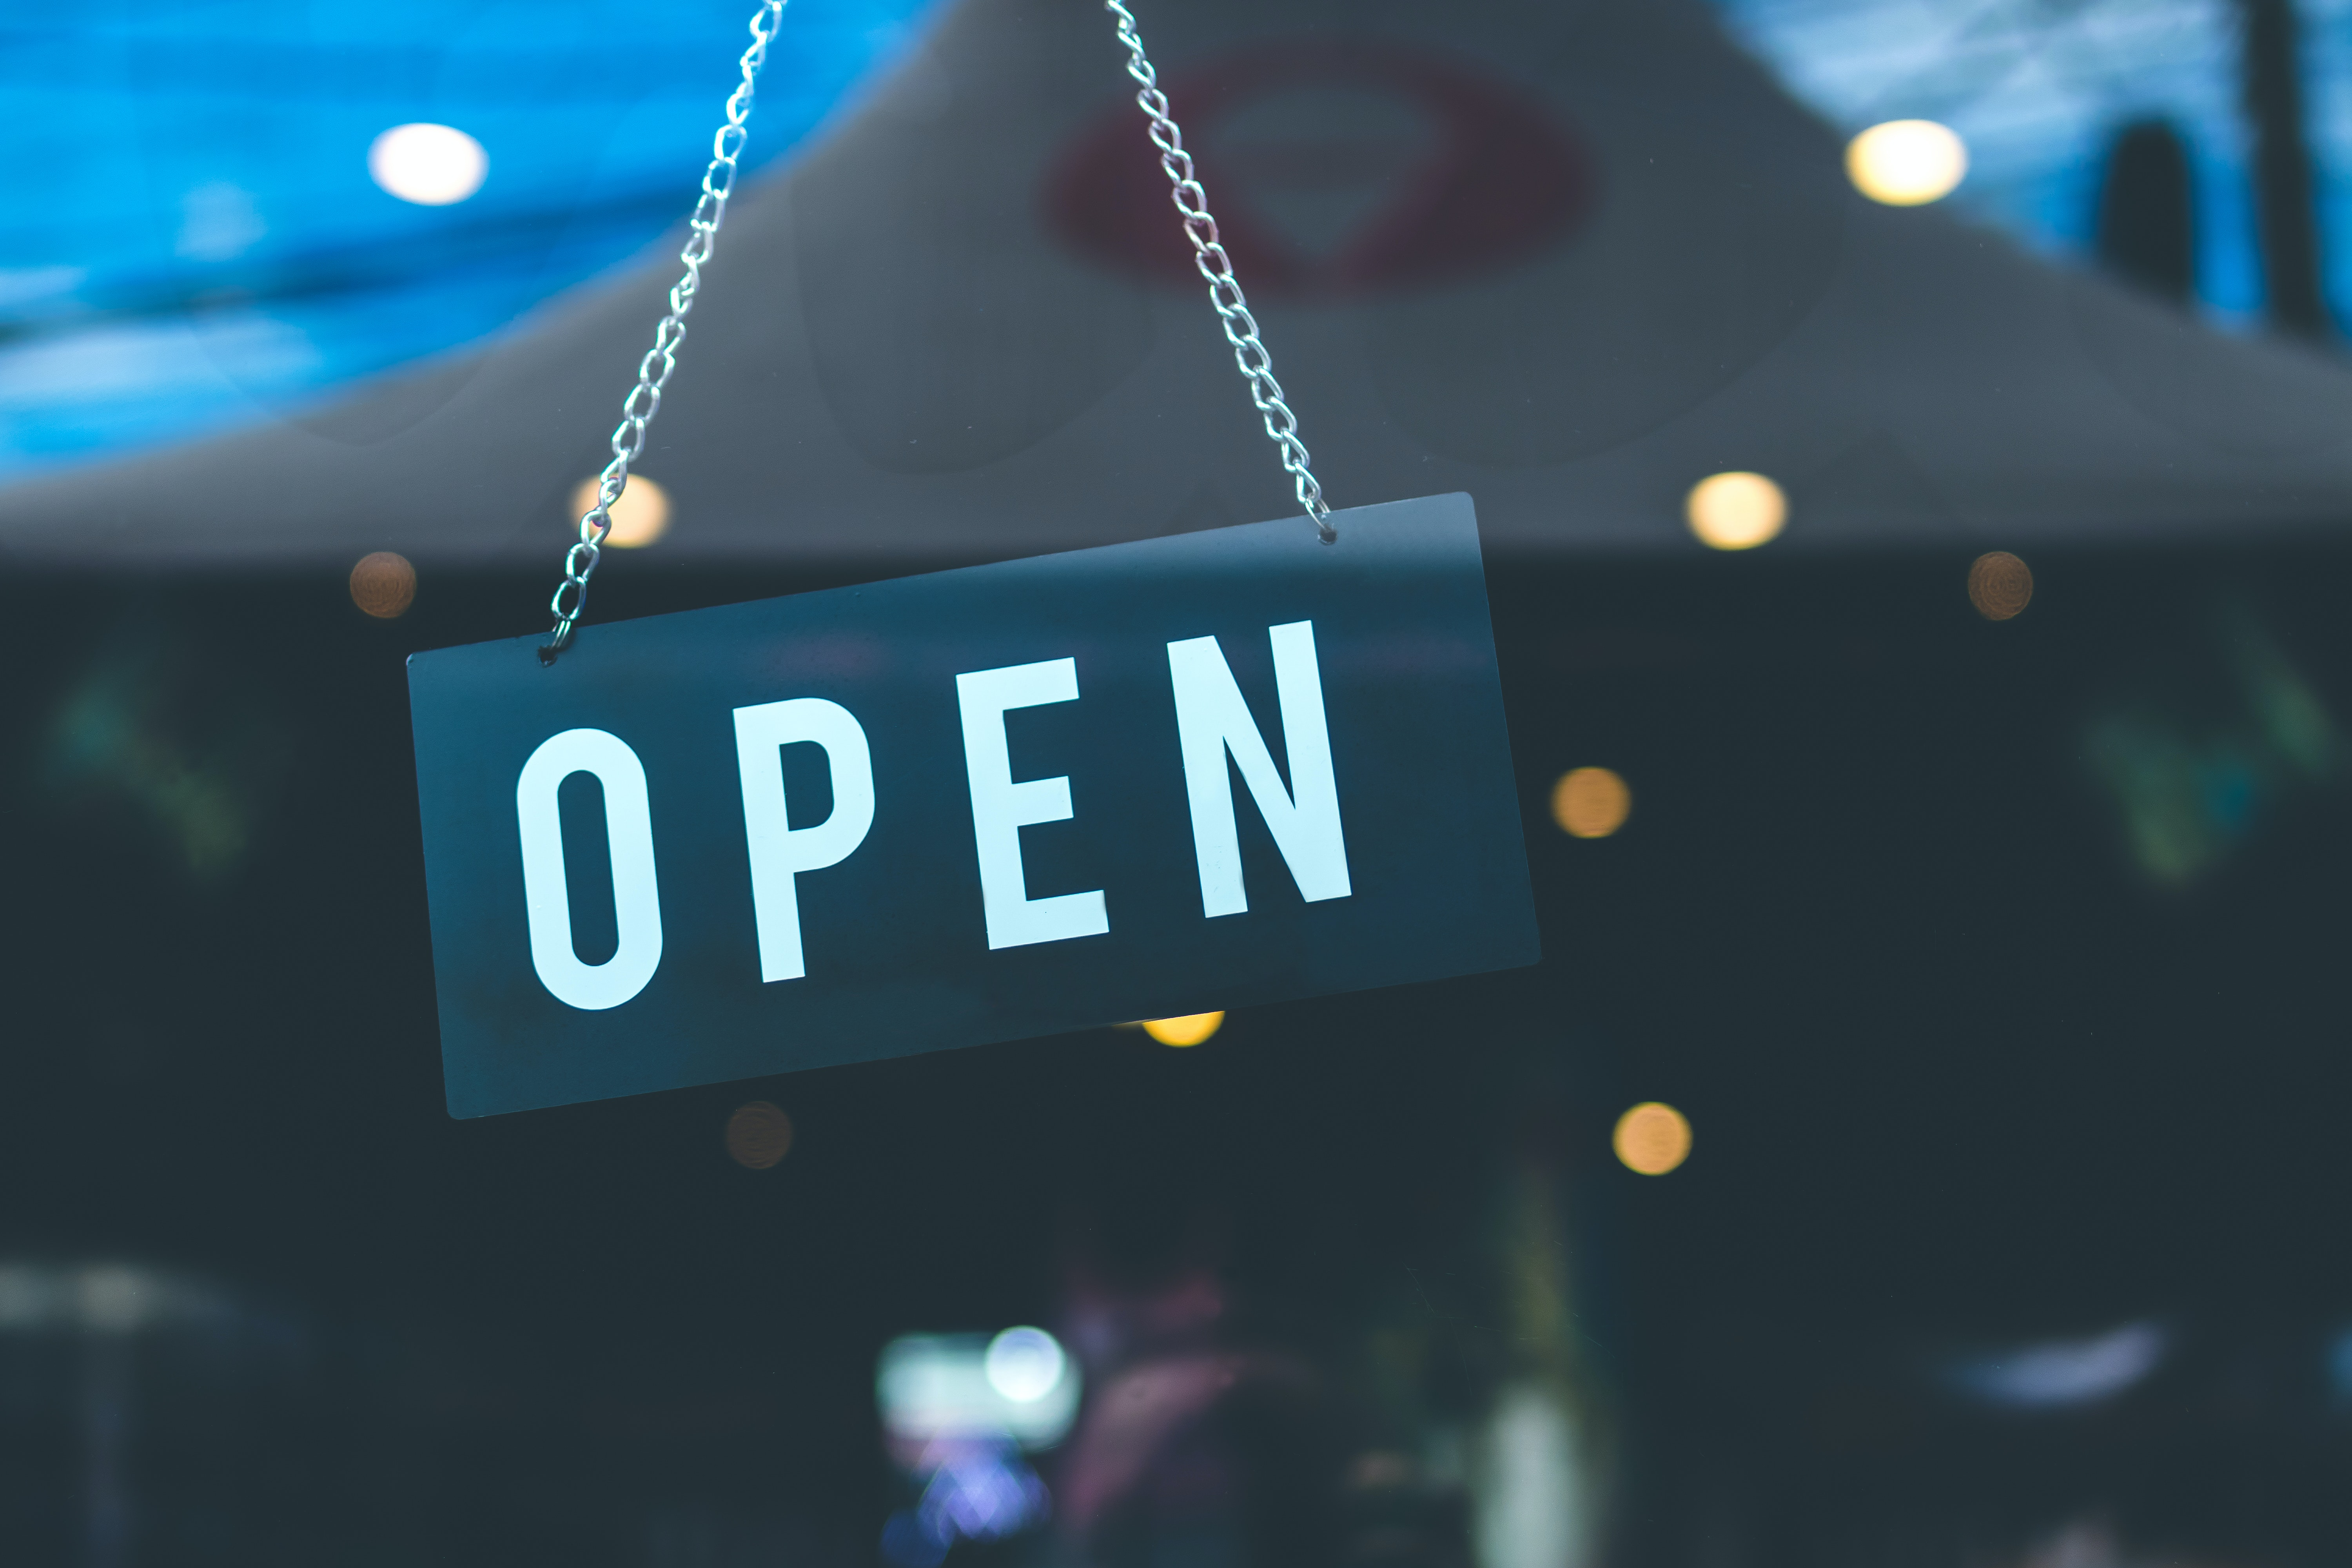 Business reopening with open sign in window